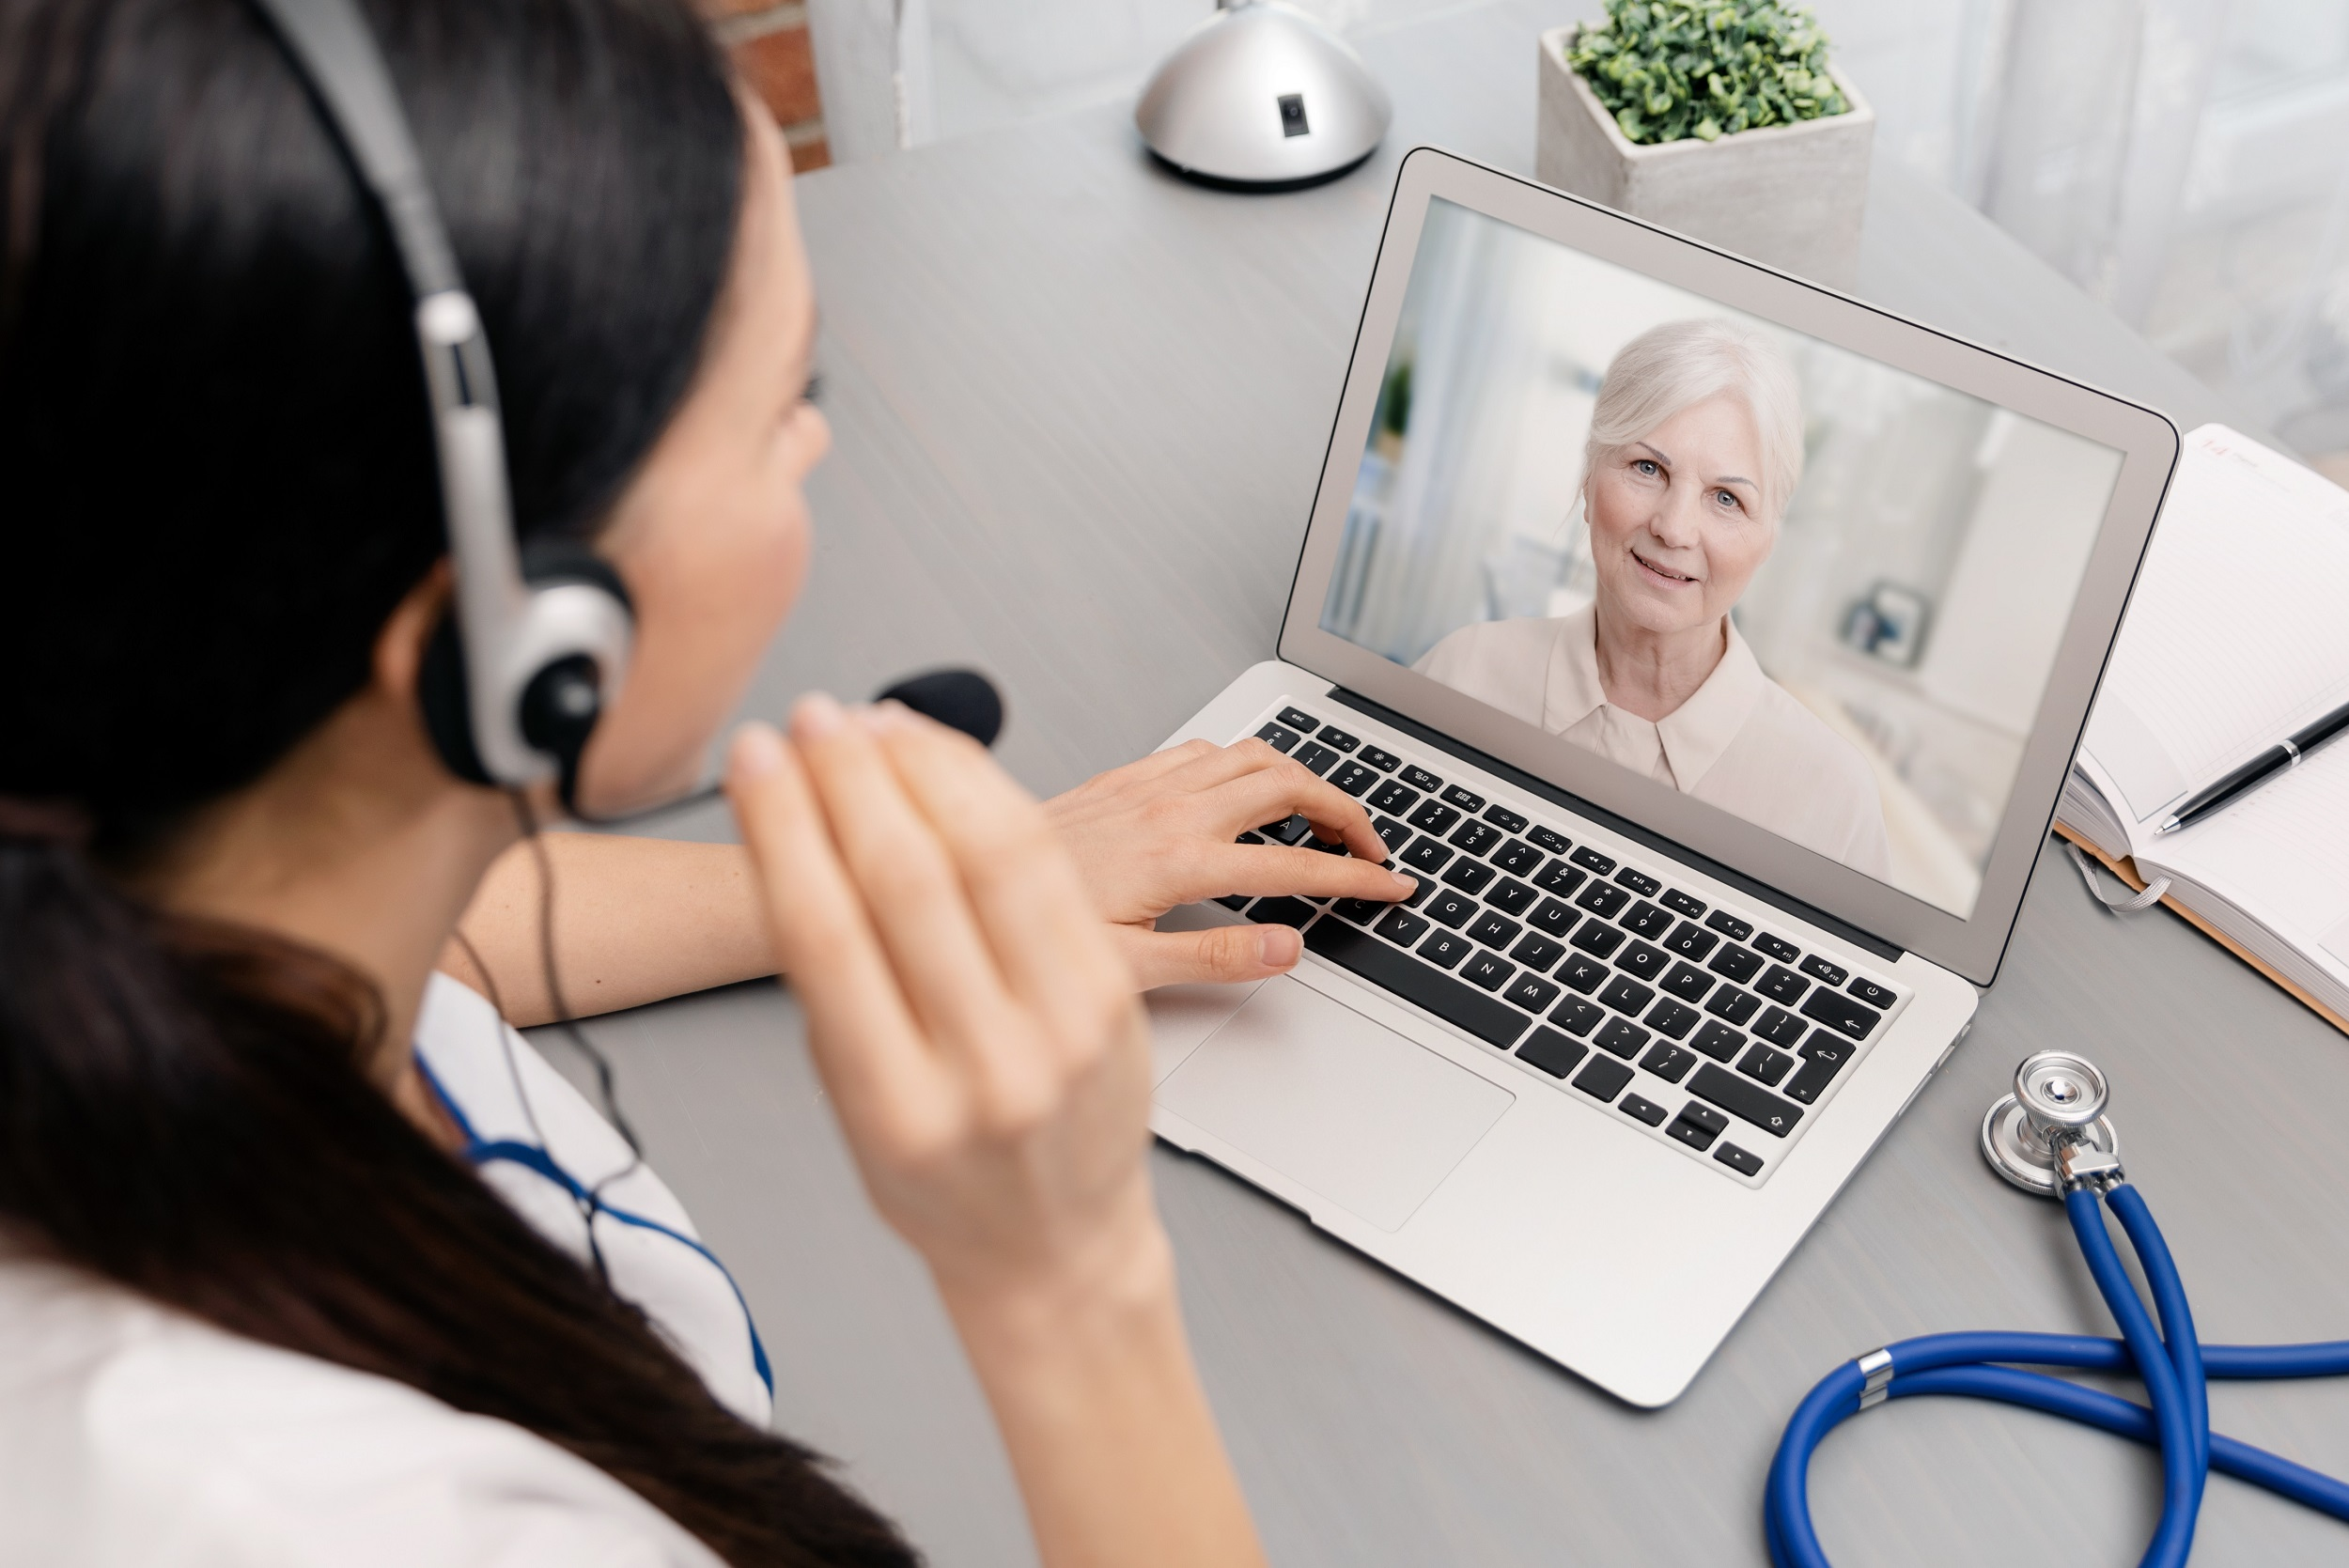 MTech Addresses Telehealth Initiatives with Device Sanitization and Data Privacy Procedures